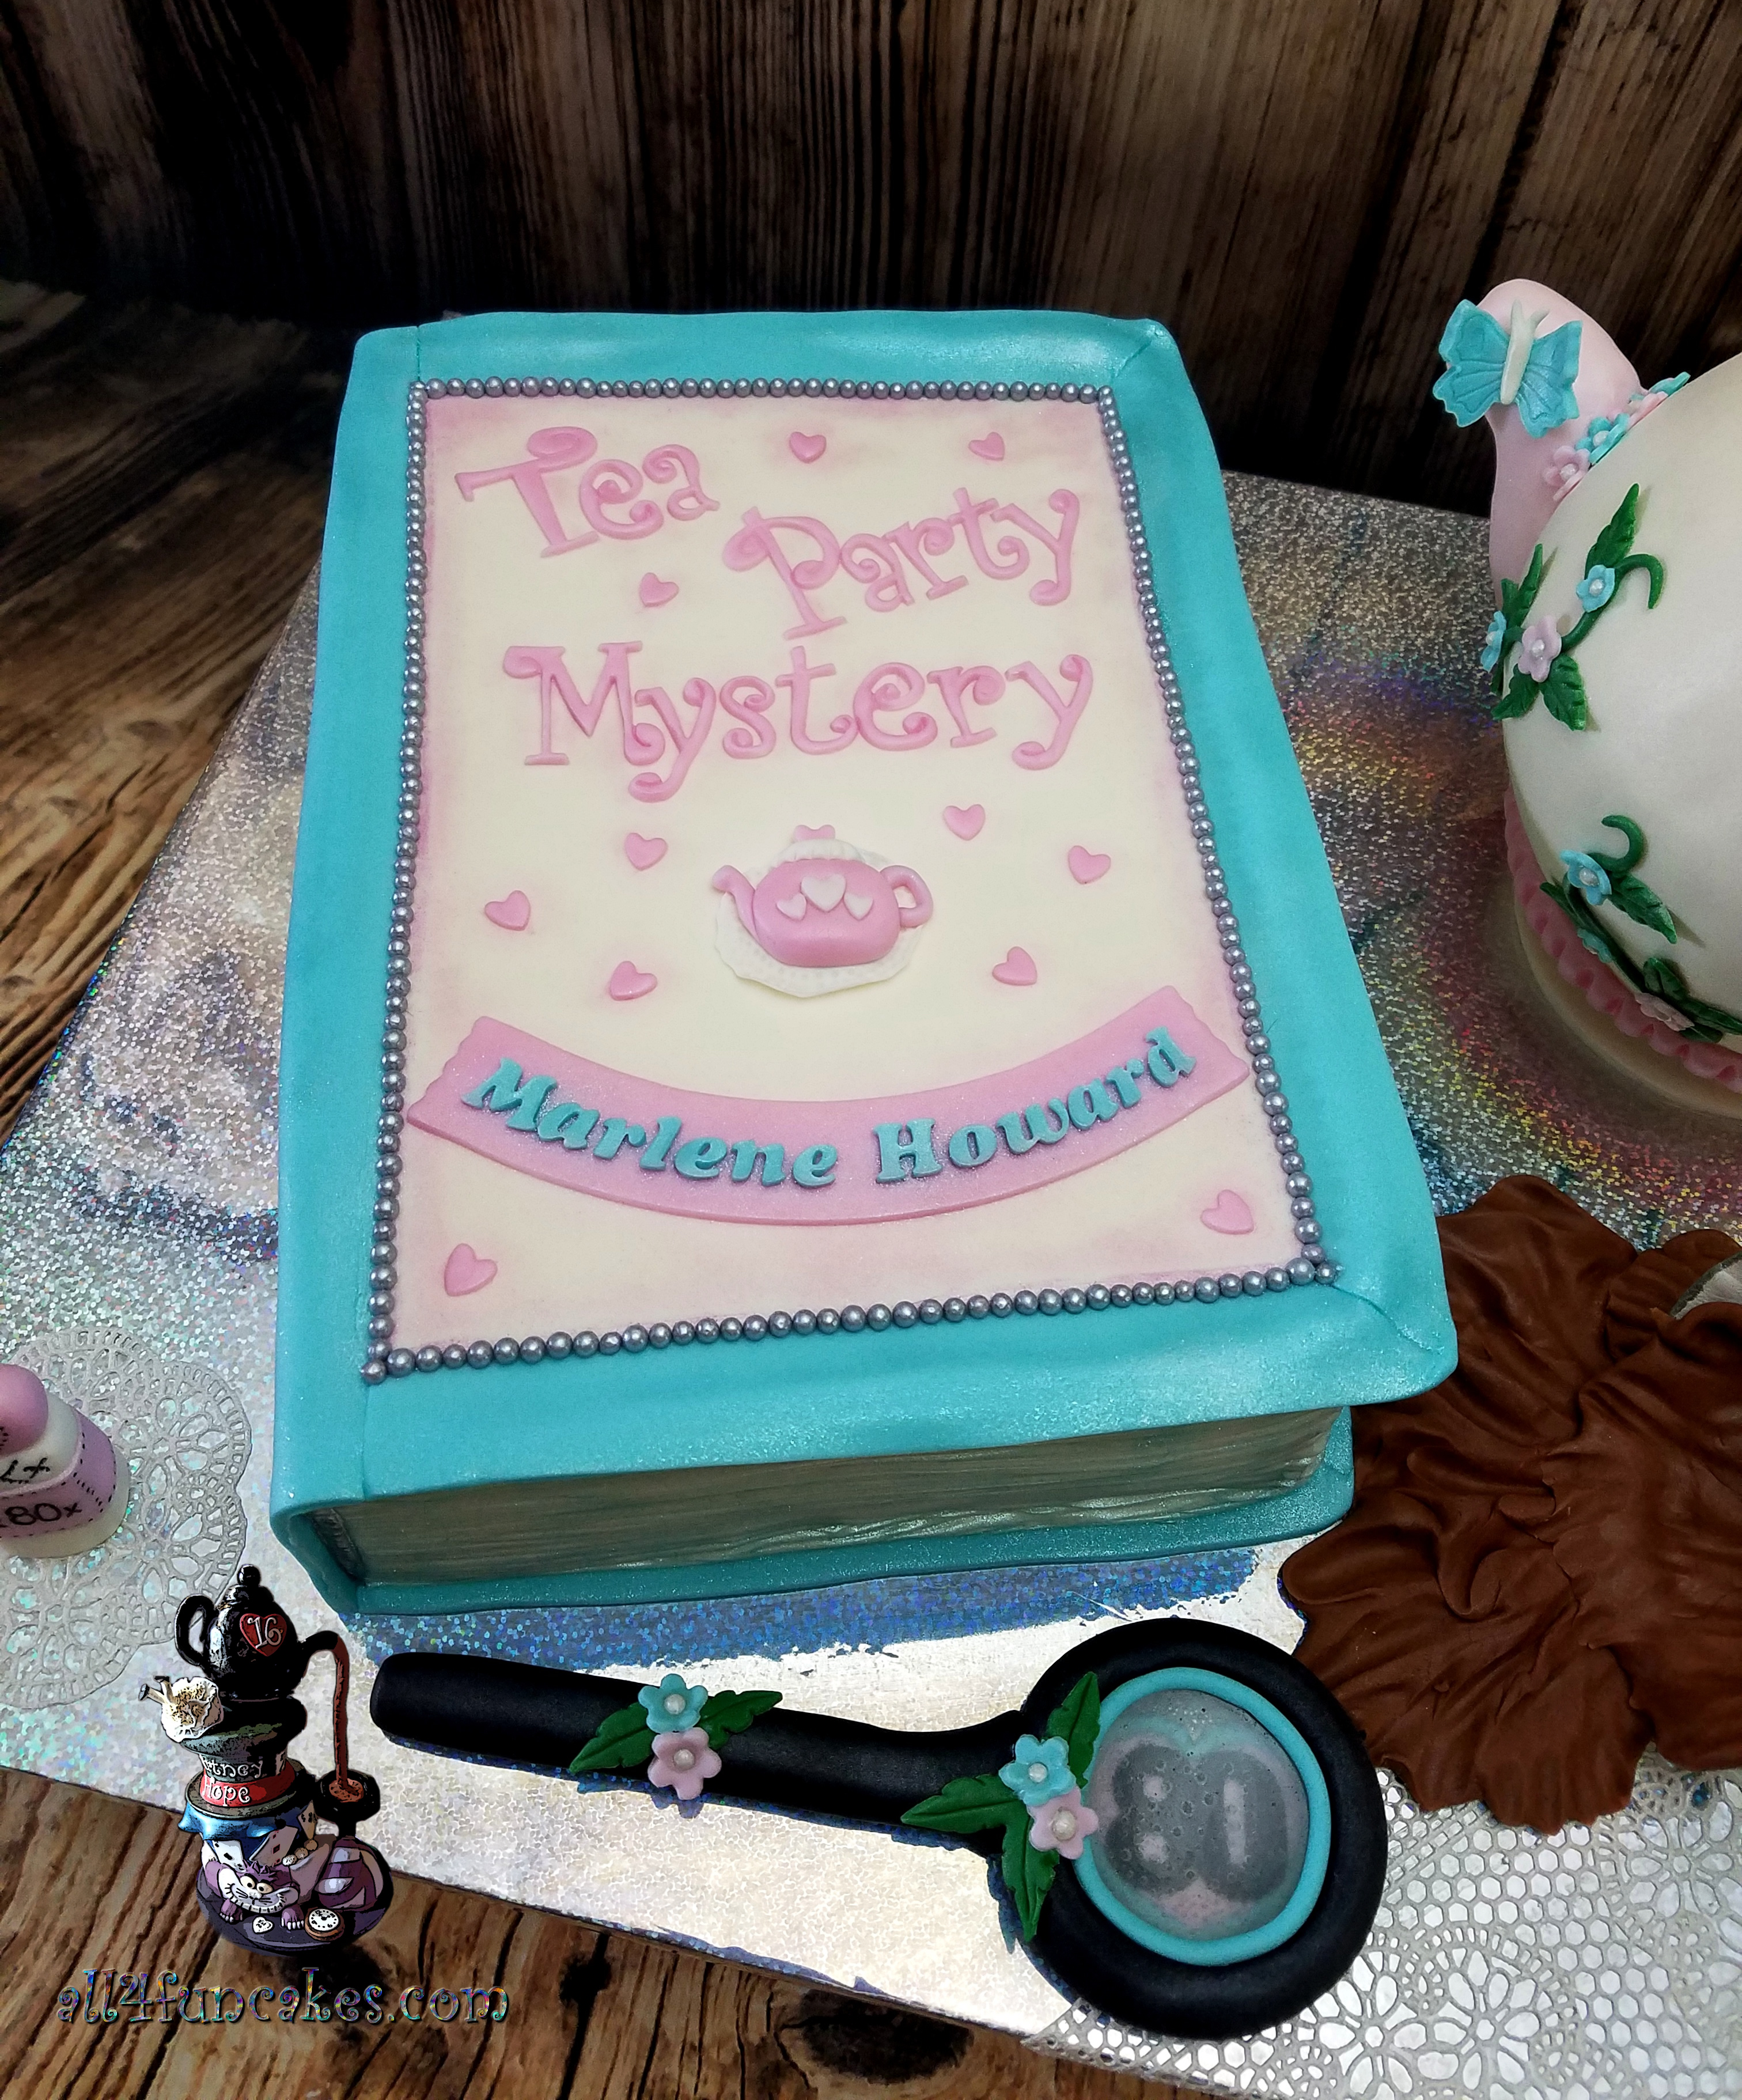 Tea Party Mystery Book Sculpted Birthday Teapot Carrot Cake by All4Fun Cakes LLC 2018